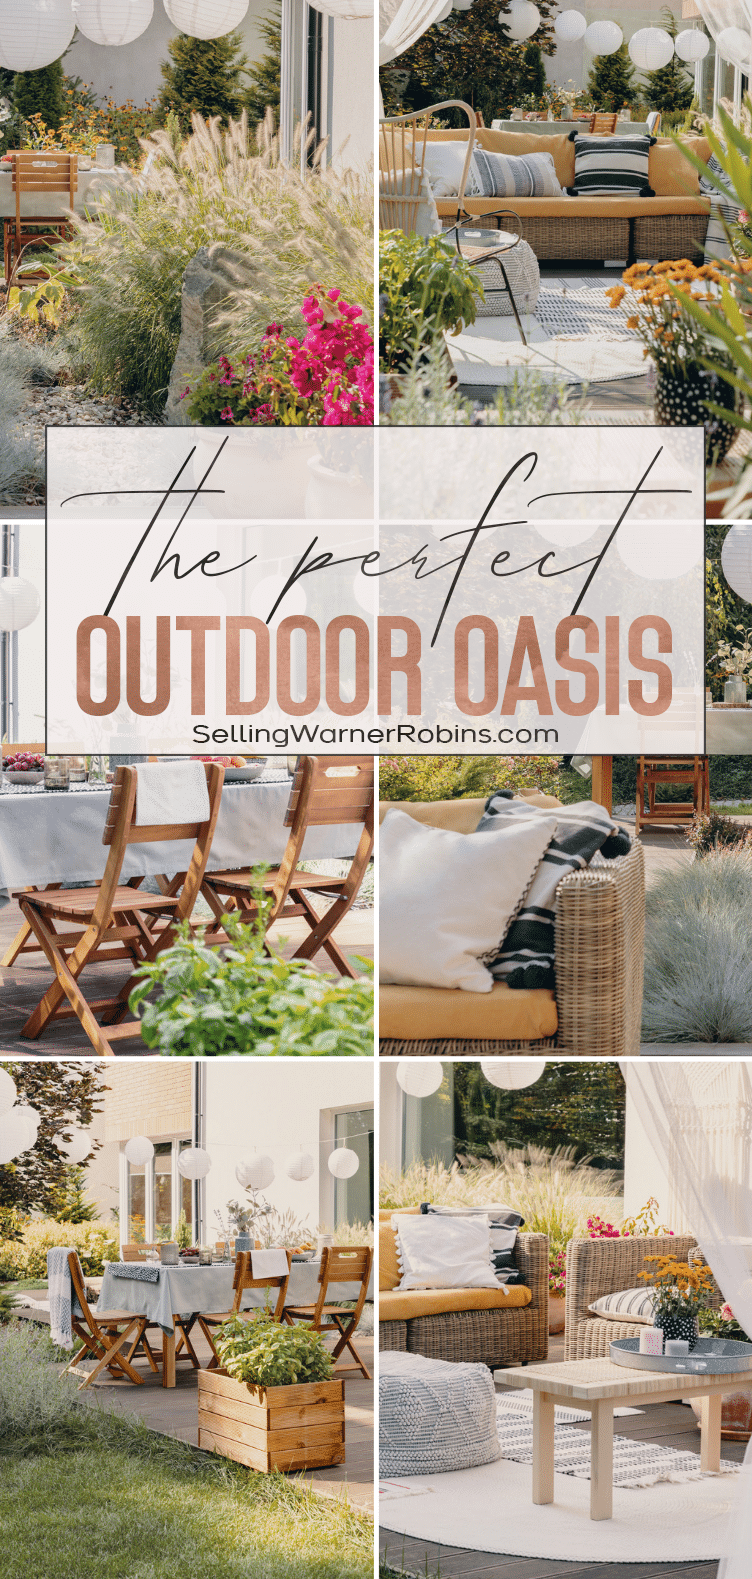 How to Create the Perfect Outdoor Oasis